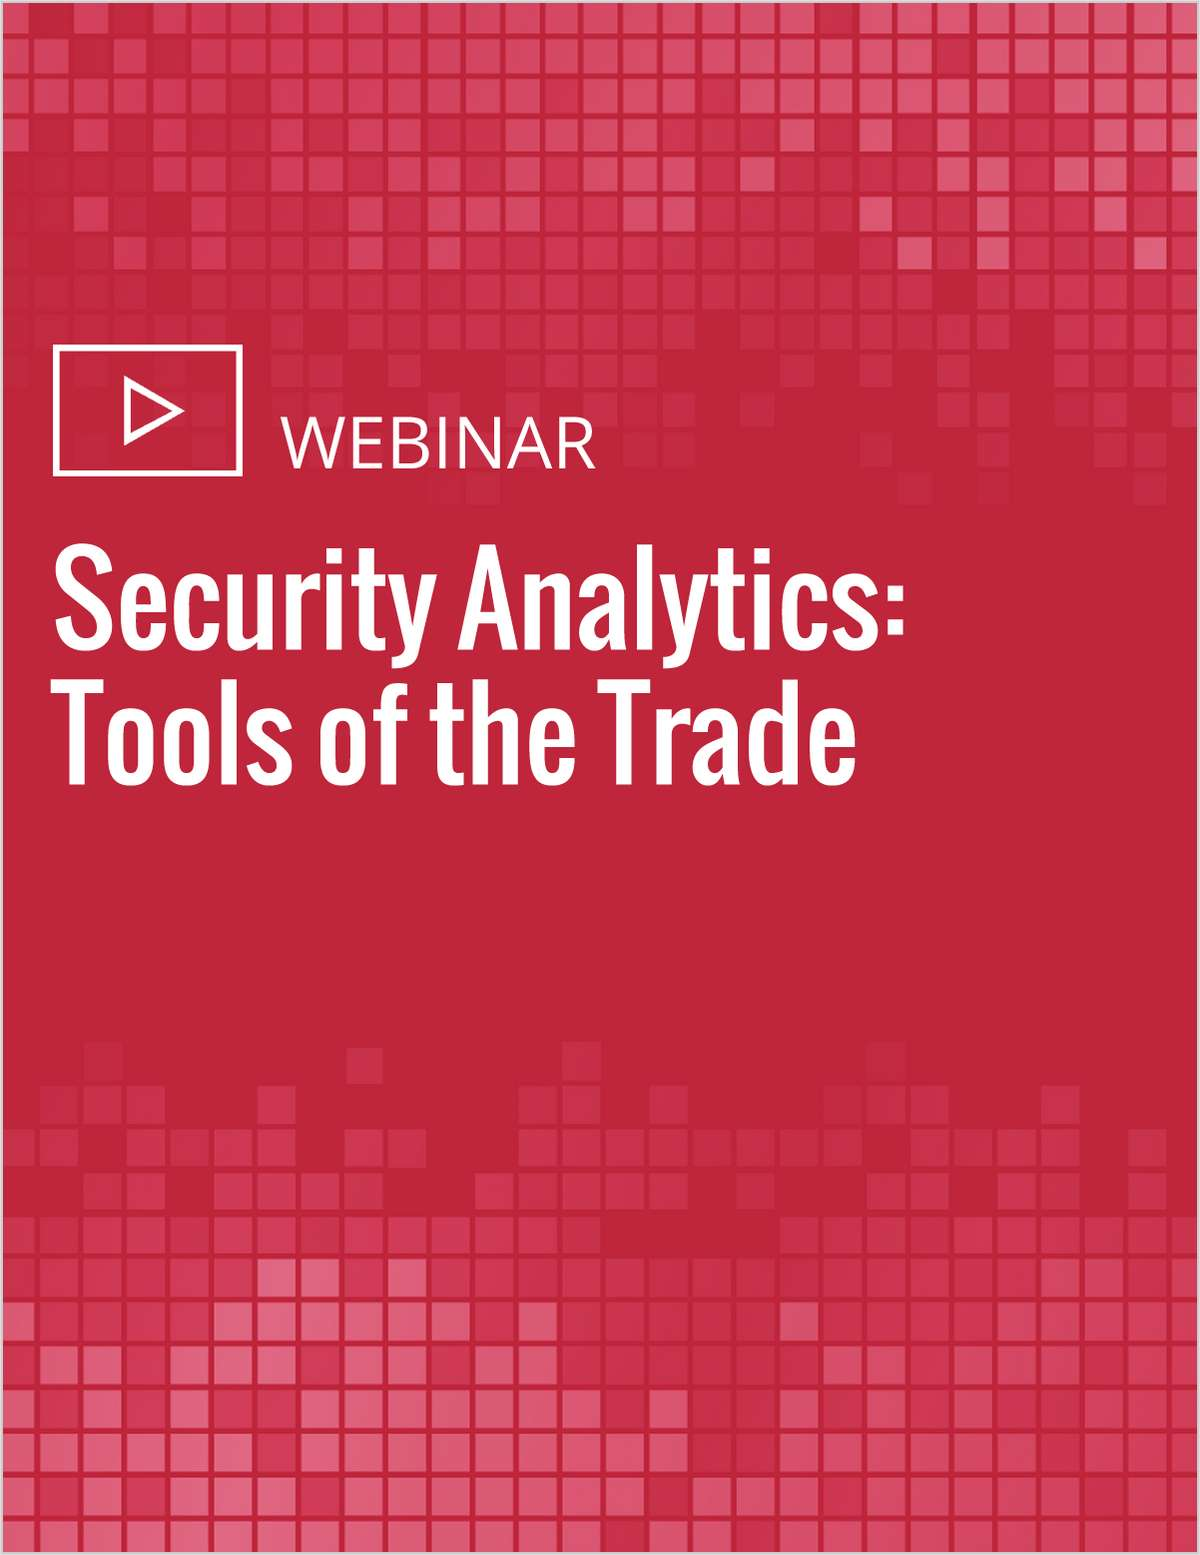 Security Analytics: Tools of the Trade